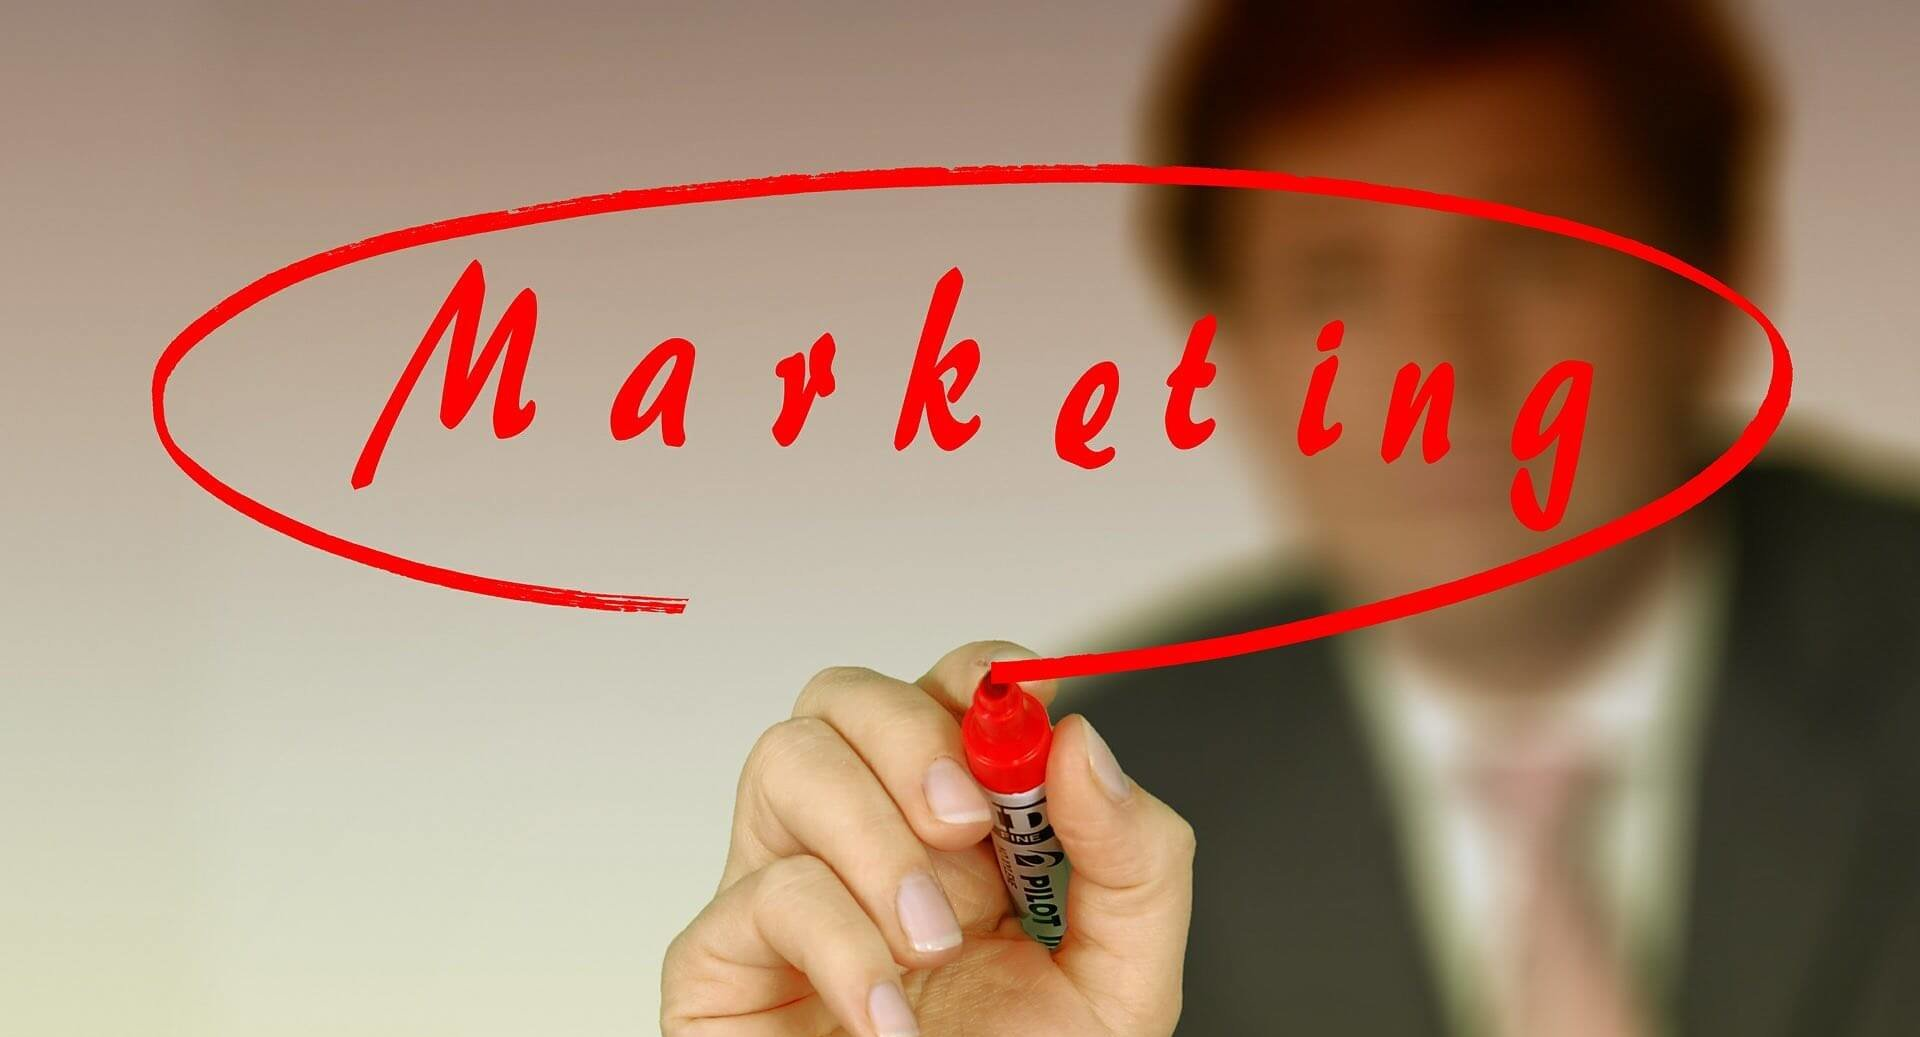 Klassisches Marketing oder Content Marketing